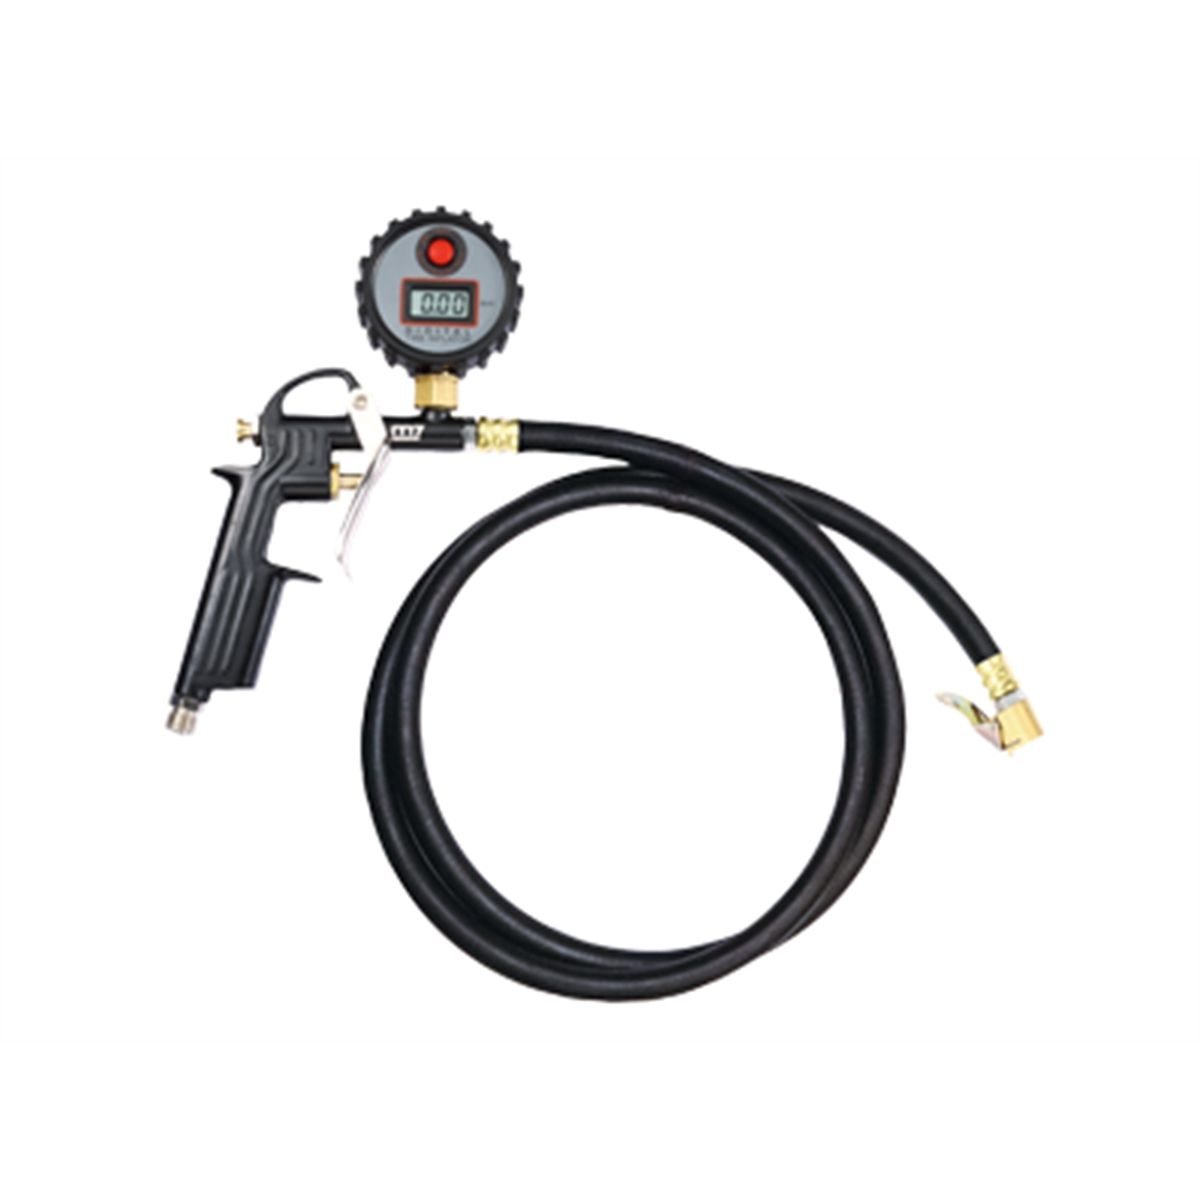 M7 Digital Tire Inflator W 5 Ft Hose